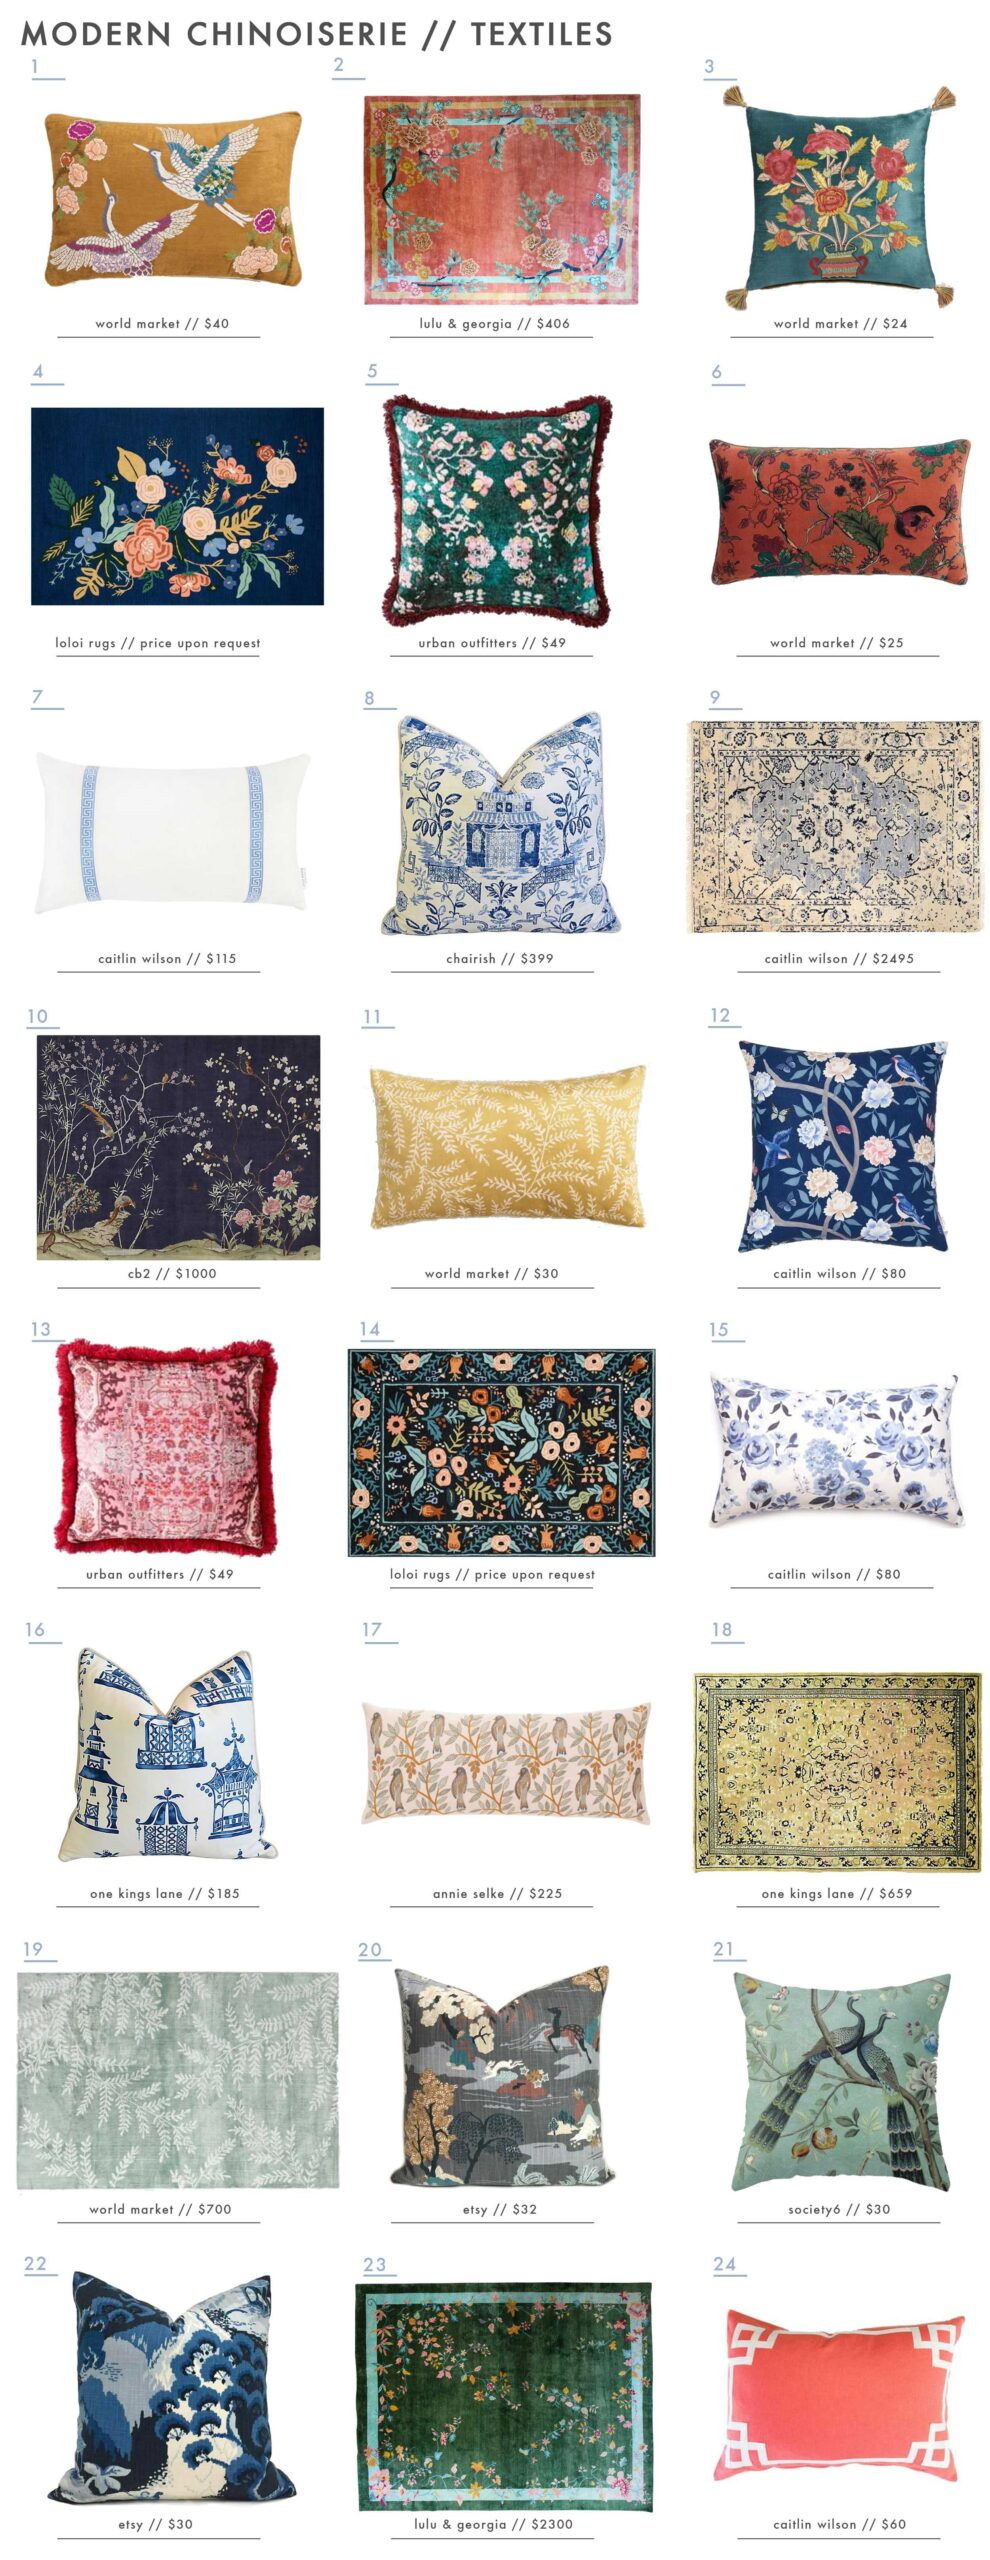 Emily Henderson Design Trends 2018 Modern Chinoiserie Roundup Textiles